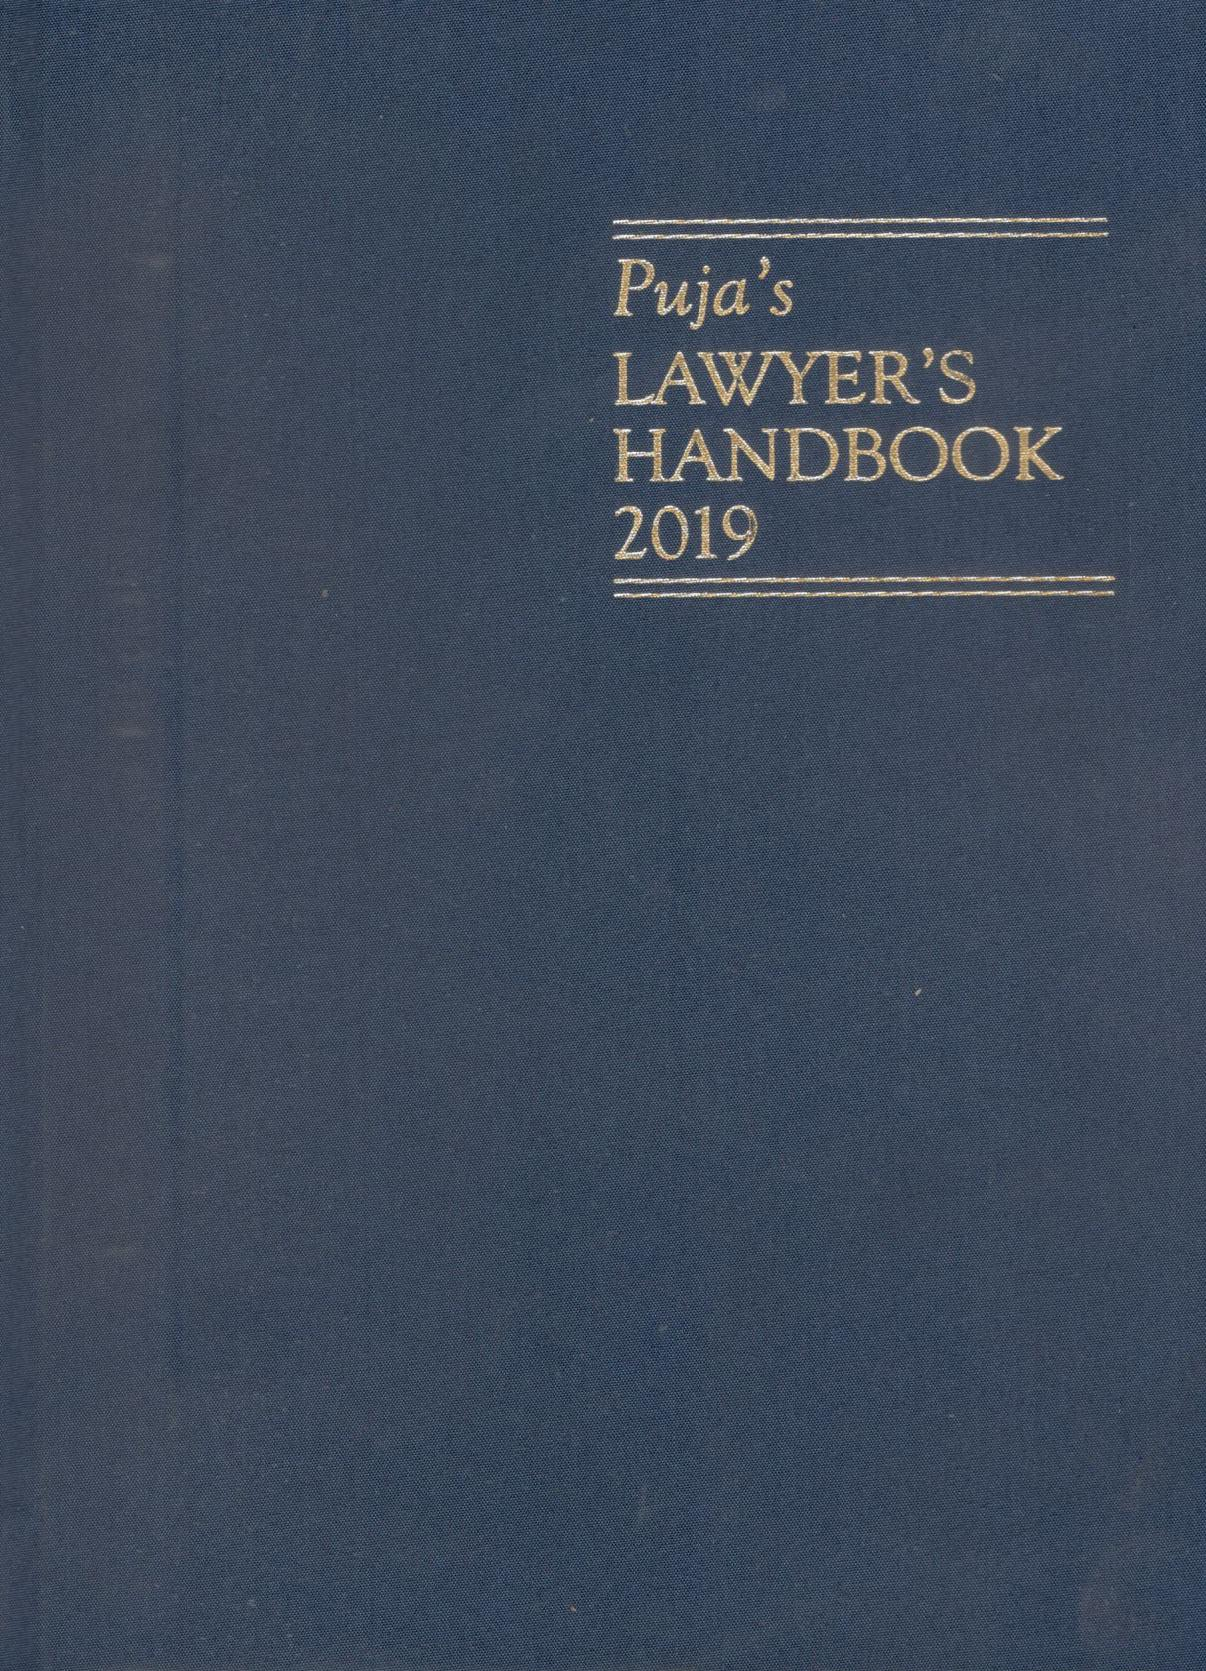 Buy Puja's Lawyers Handbook with Diary 2019 Medium Size (2 Number) Hardbound